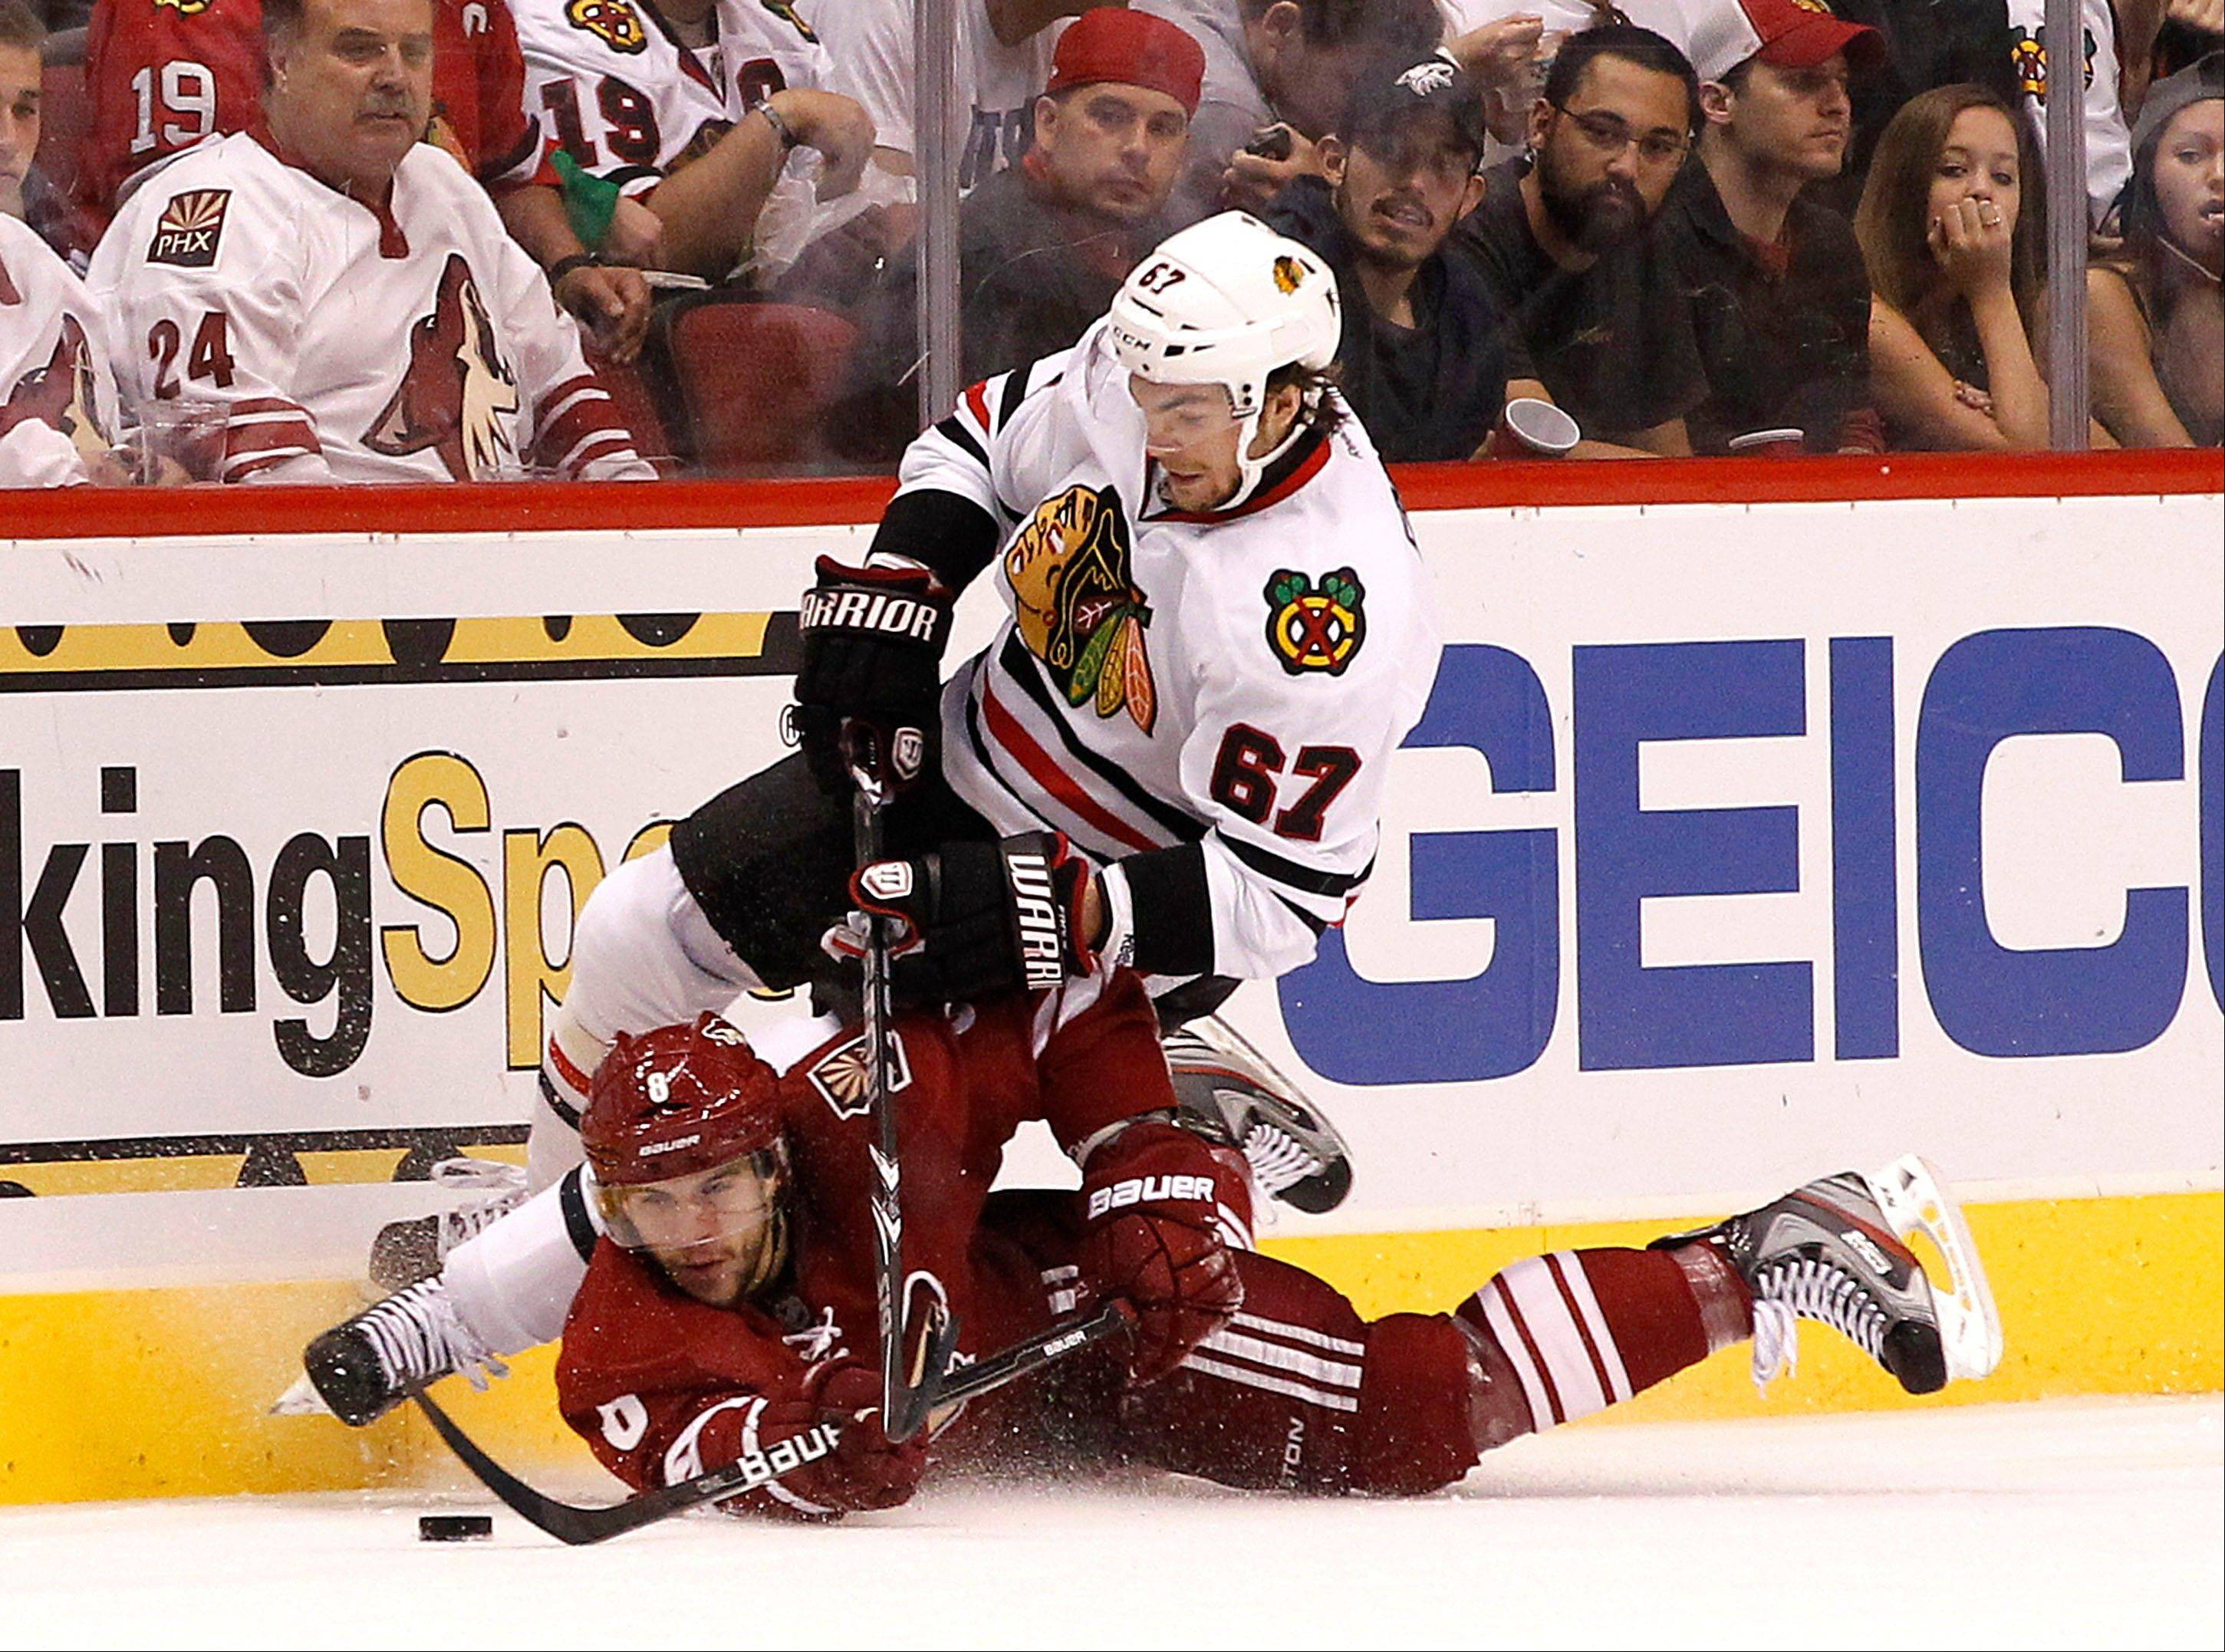 Phoenix Coyotes' Gilbert Brule (8) tries to get control of the puck as Michael Frolik falls over him during the second period in Game 5 of an NHL hockey Stanley Cup first-round playoff series Saturday, April 21, 2012, in Glendale, Ariz.